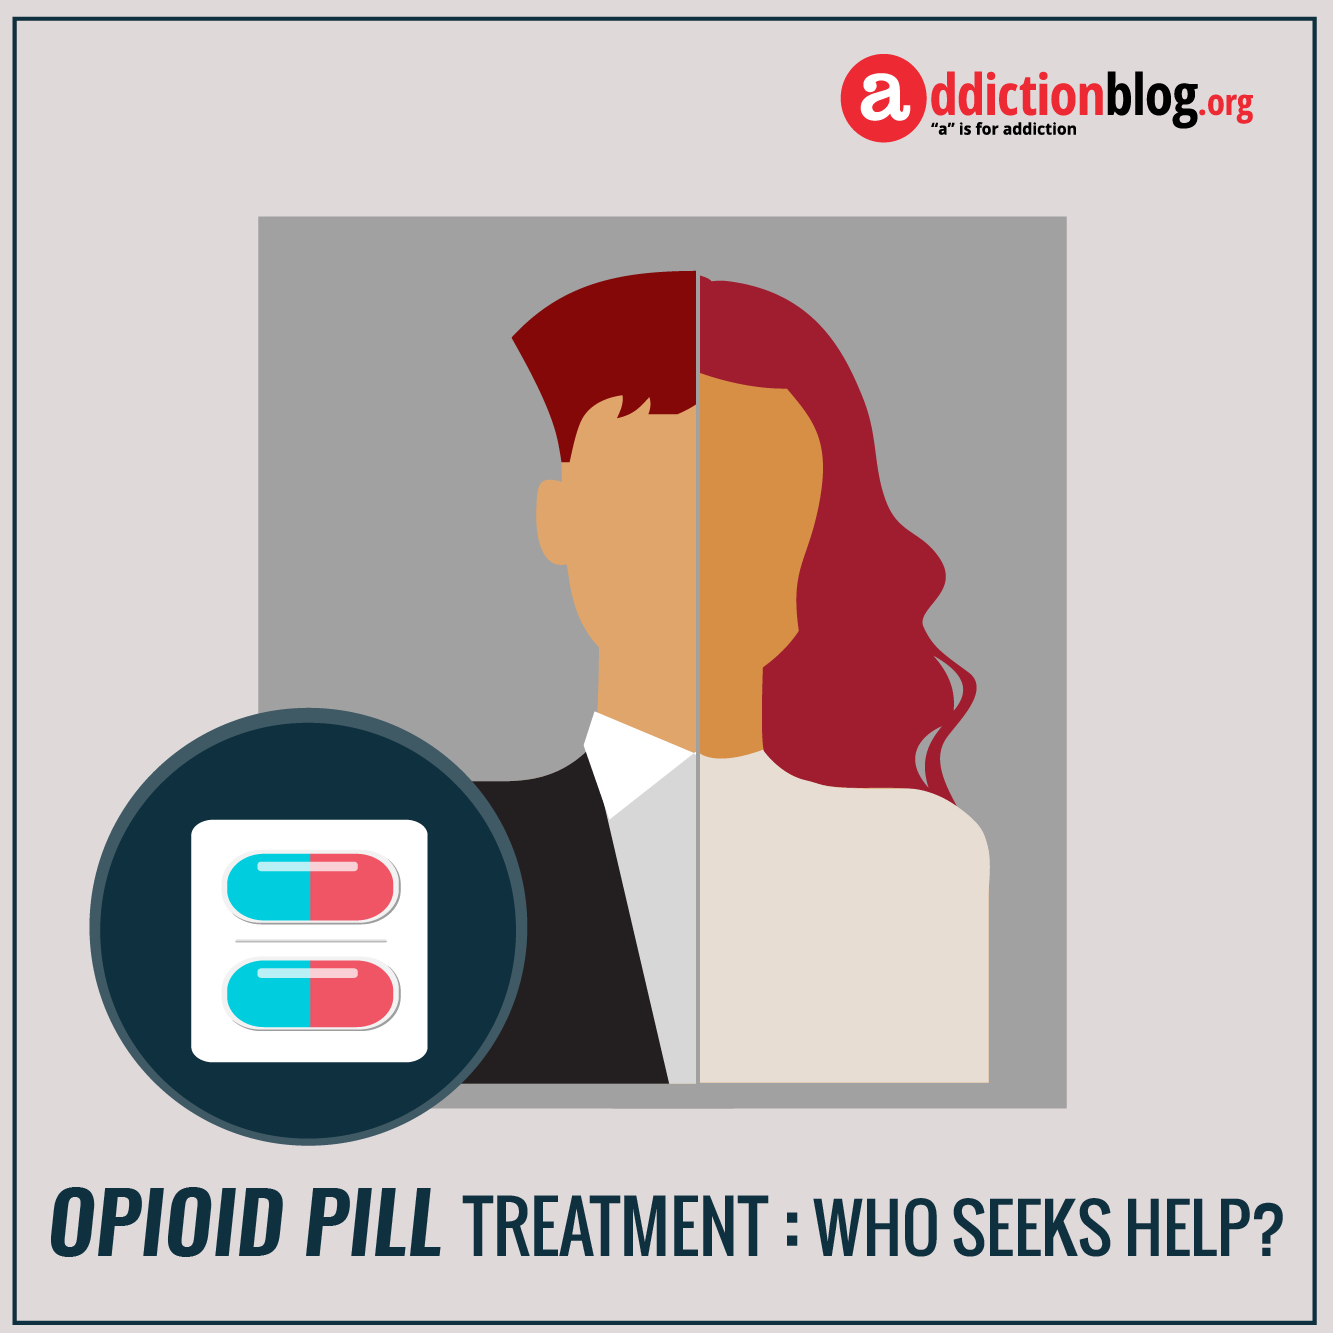 The face of opioid painkiller addiction treatment: Who seeks help? (INFOGRAPHIC)